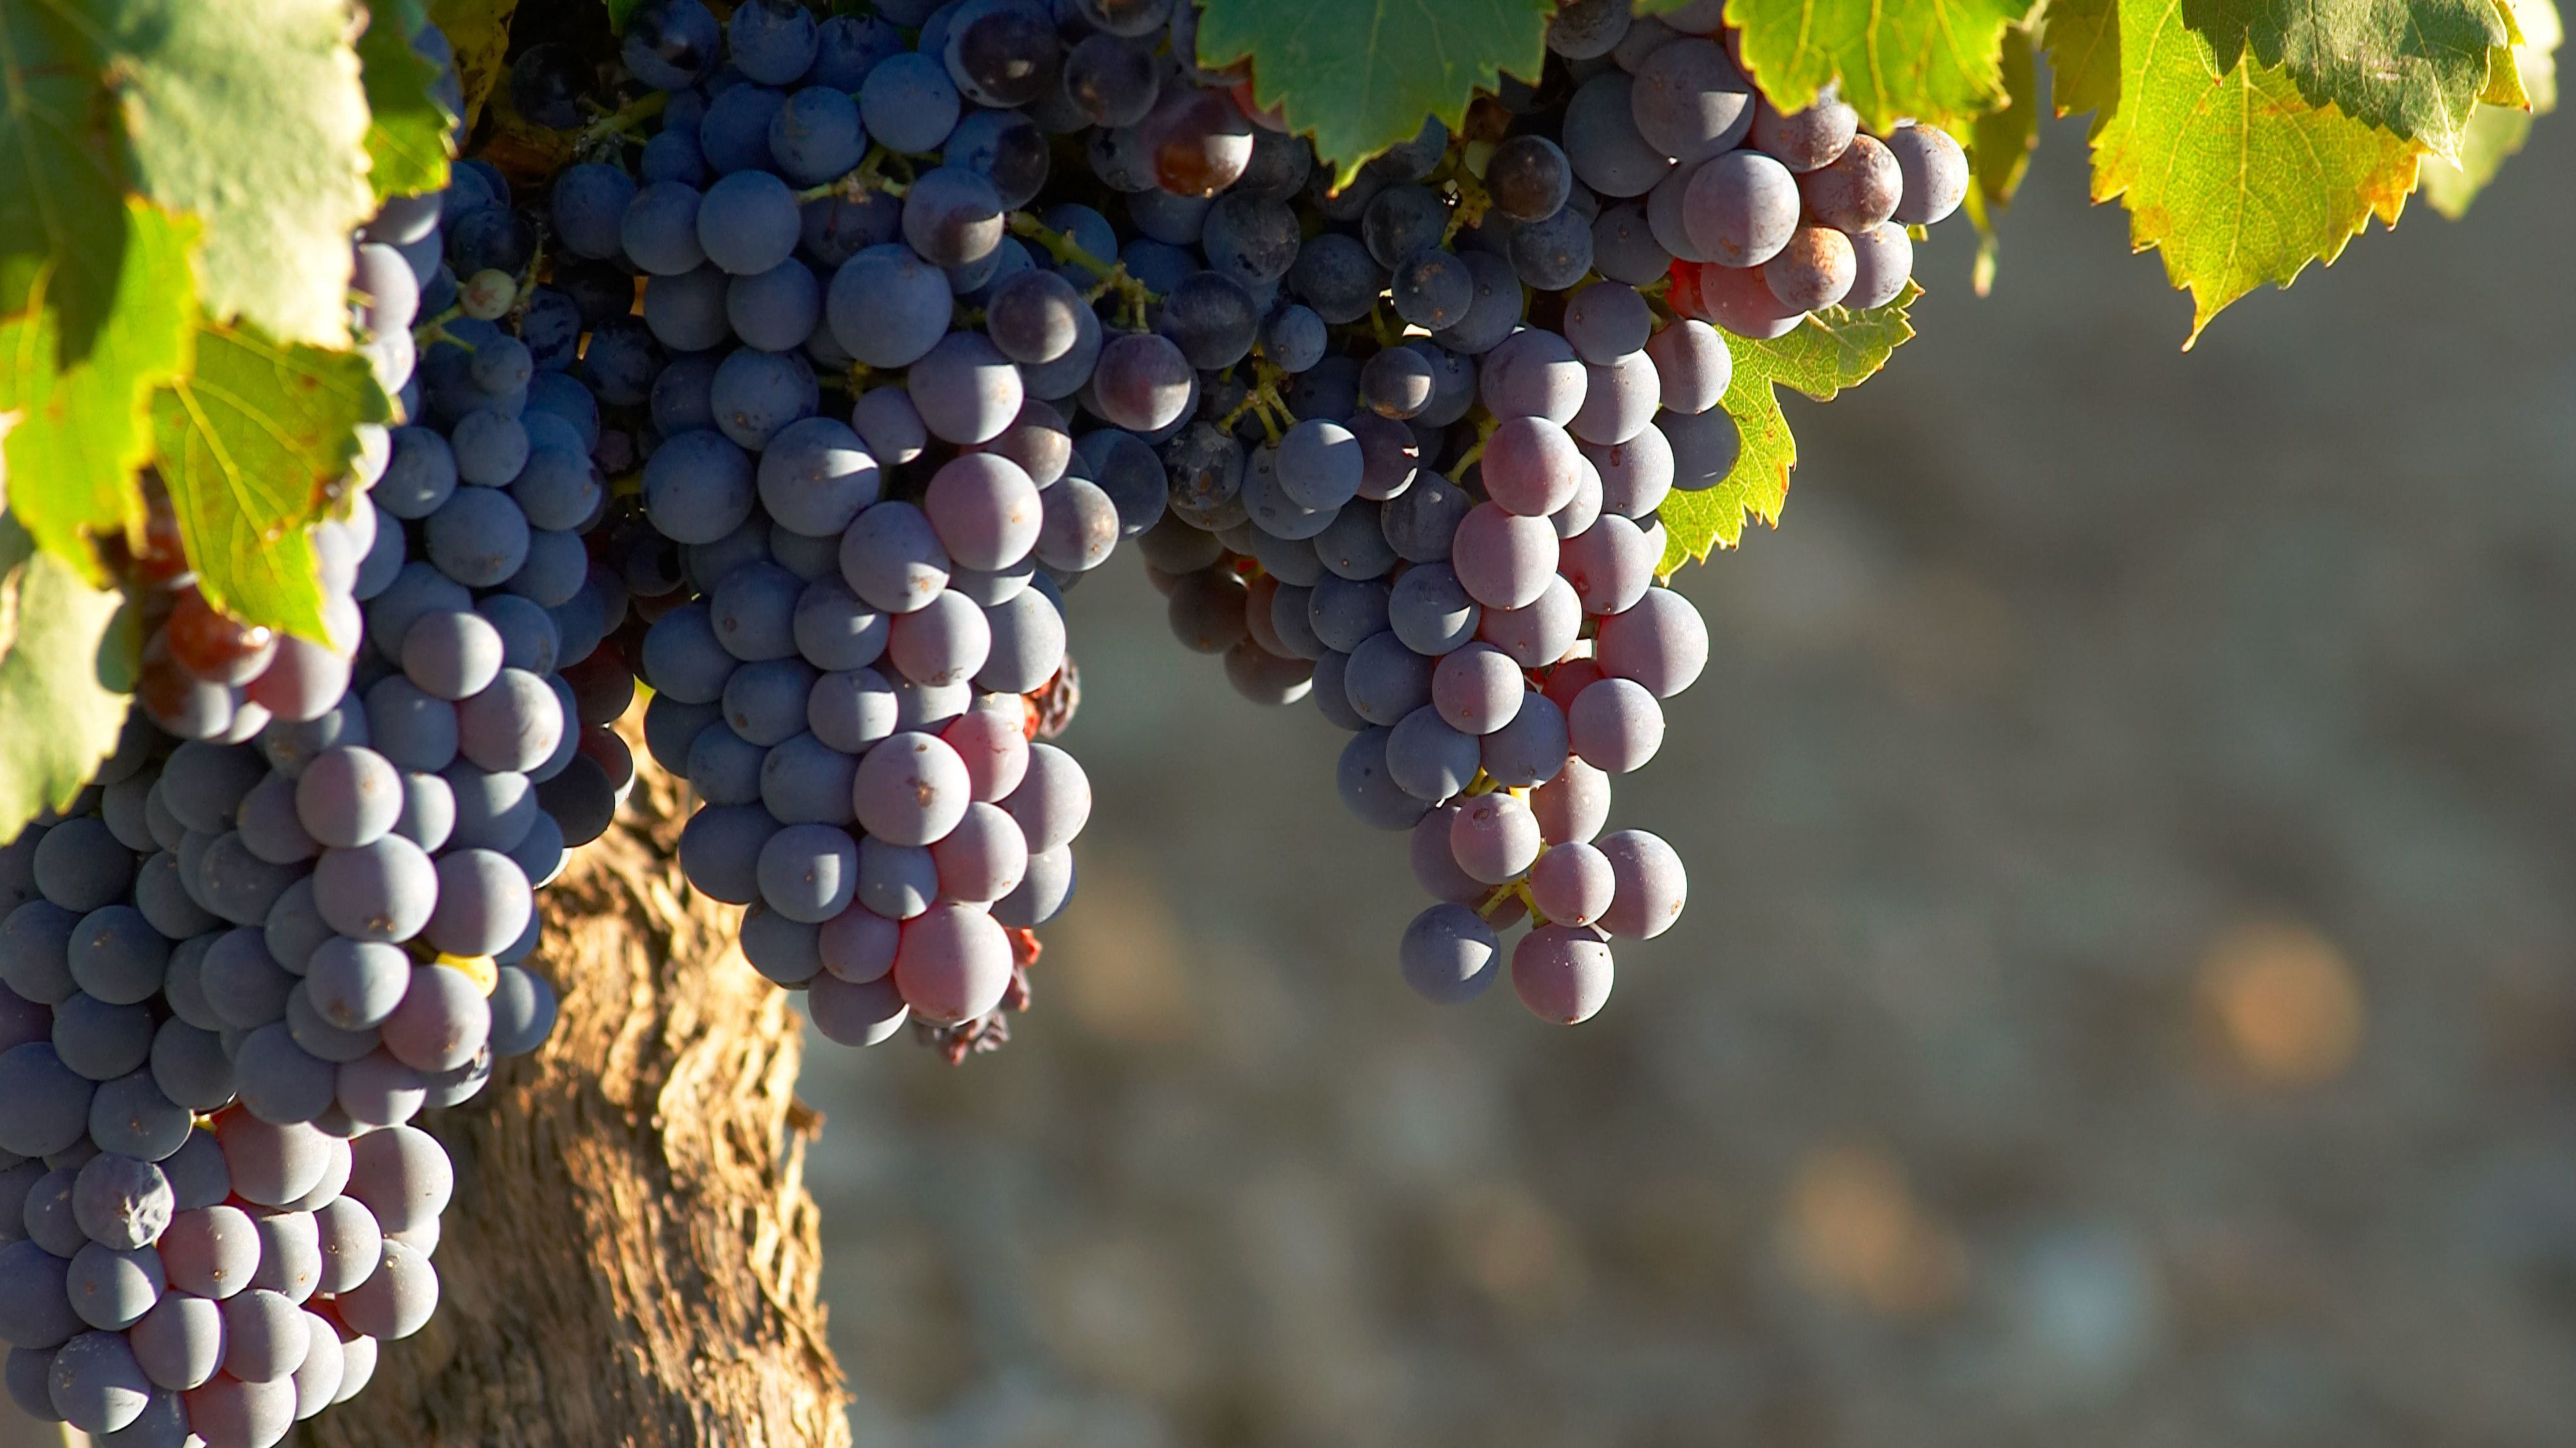 Grapes on the vine at a vineyard in the Rhone Valley